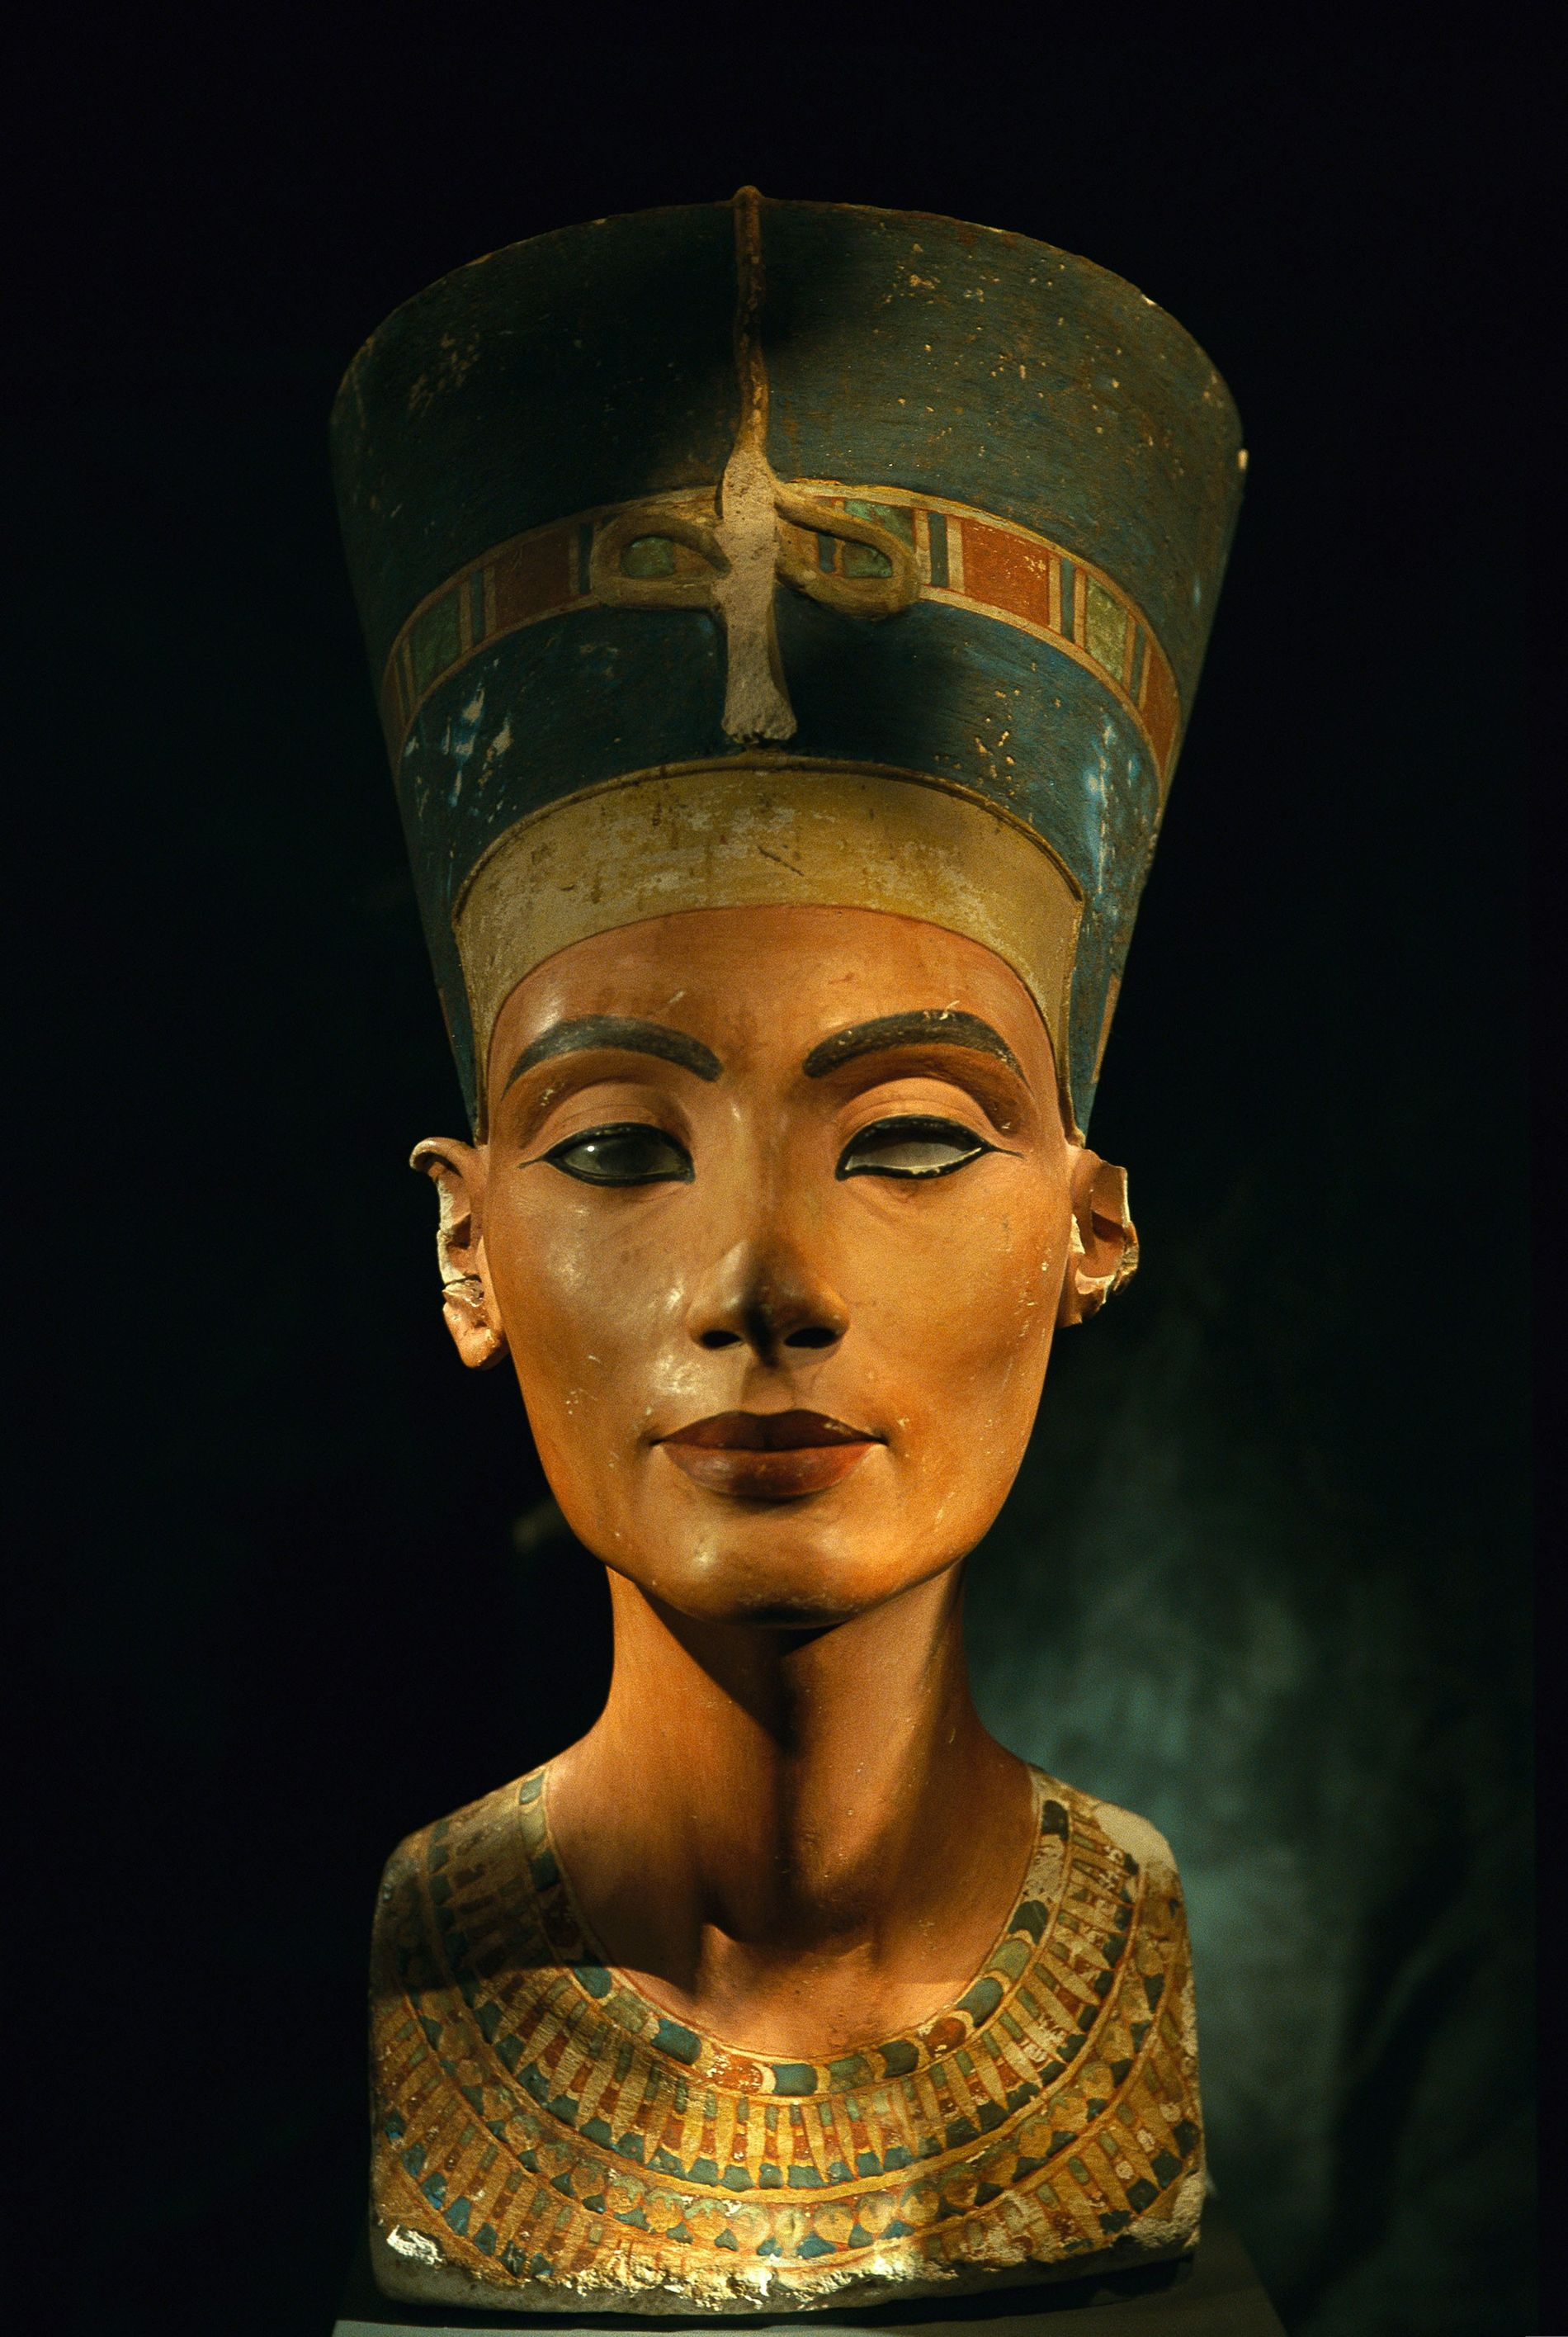 Bust of Egyptian Queen Nefertiti.